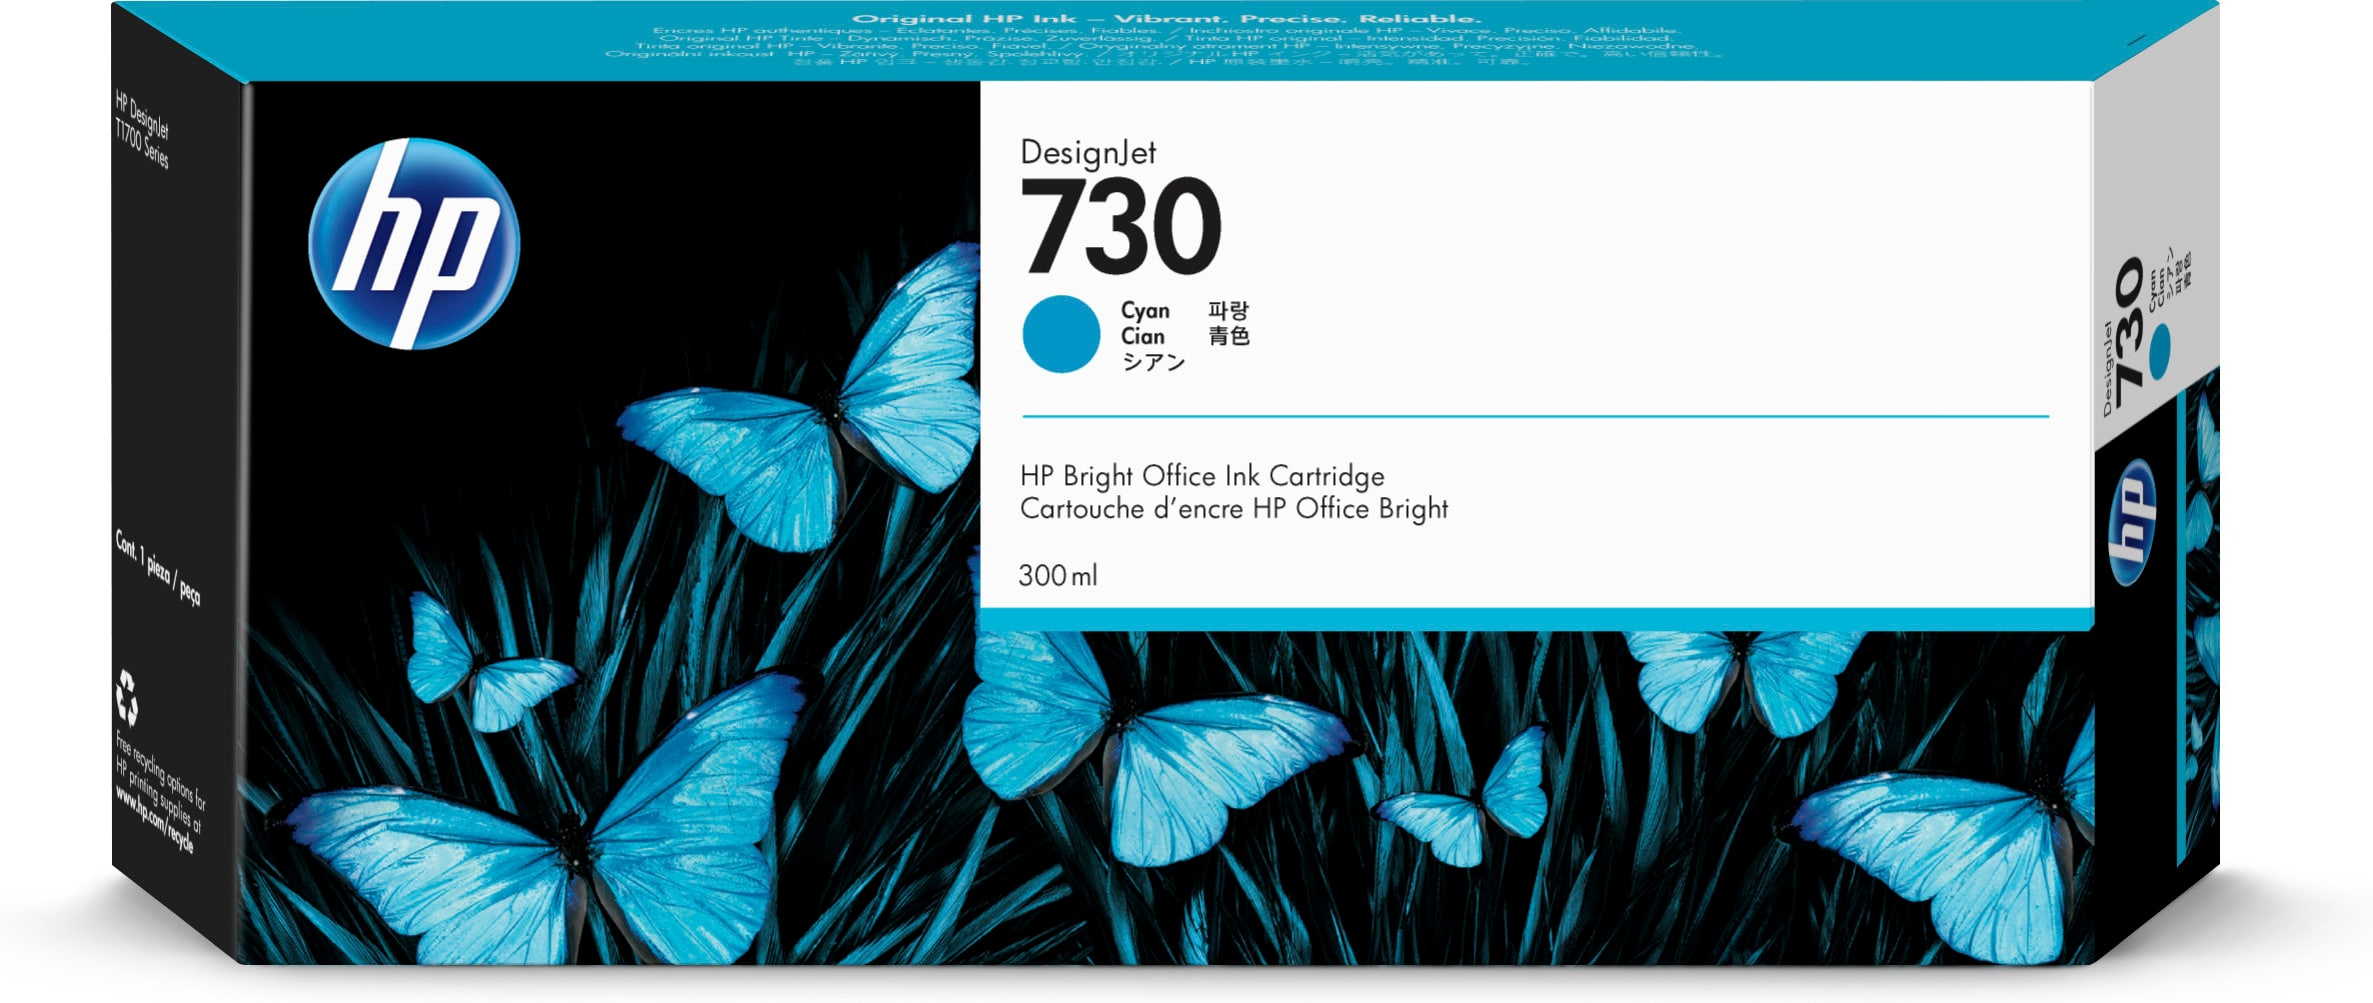 HP No. 730 Ink Cartridge Cyan - 300ml P2v68a